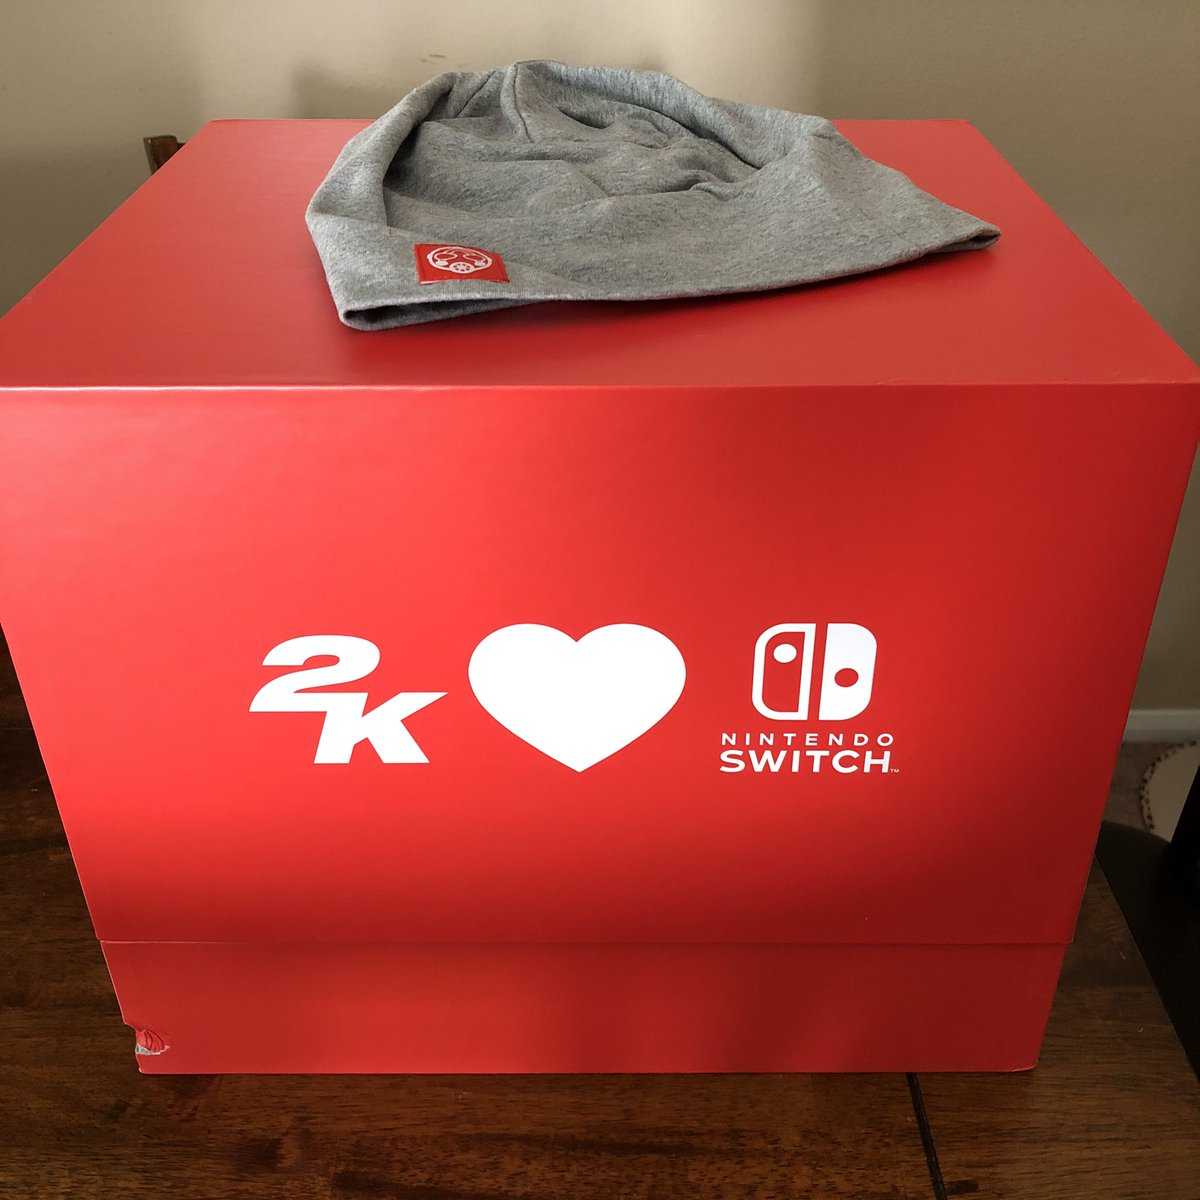 Soooo...this glorious package just showed up on my doorstep. WHO SENT THIS?!? I owe you S__________ favors!! 3 of my favorite franchises all wrapped into a big red box.  #2KGames #2KSwitch #NintendoSwitch<br>http://pic.twitter.com/bfk62I1Qti